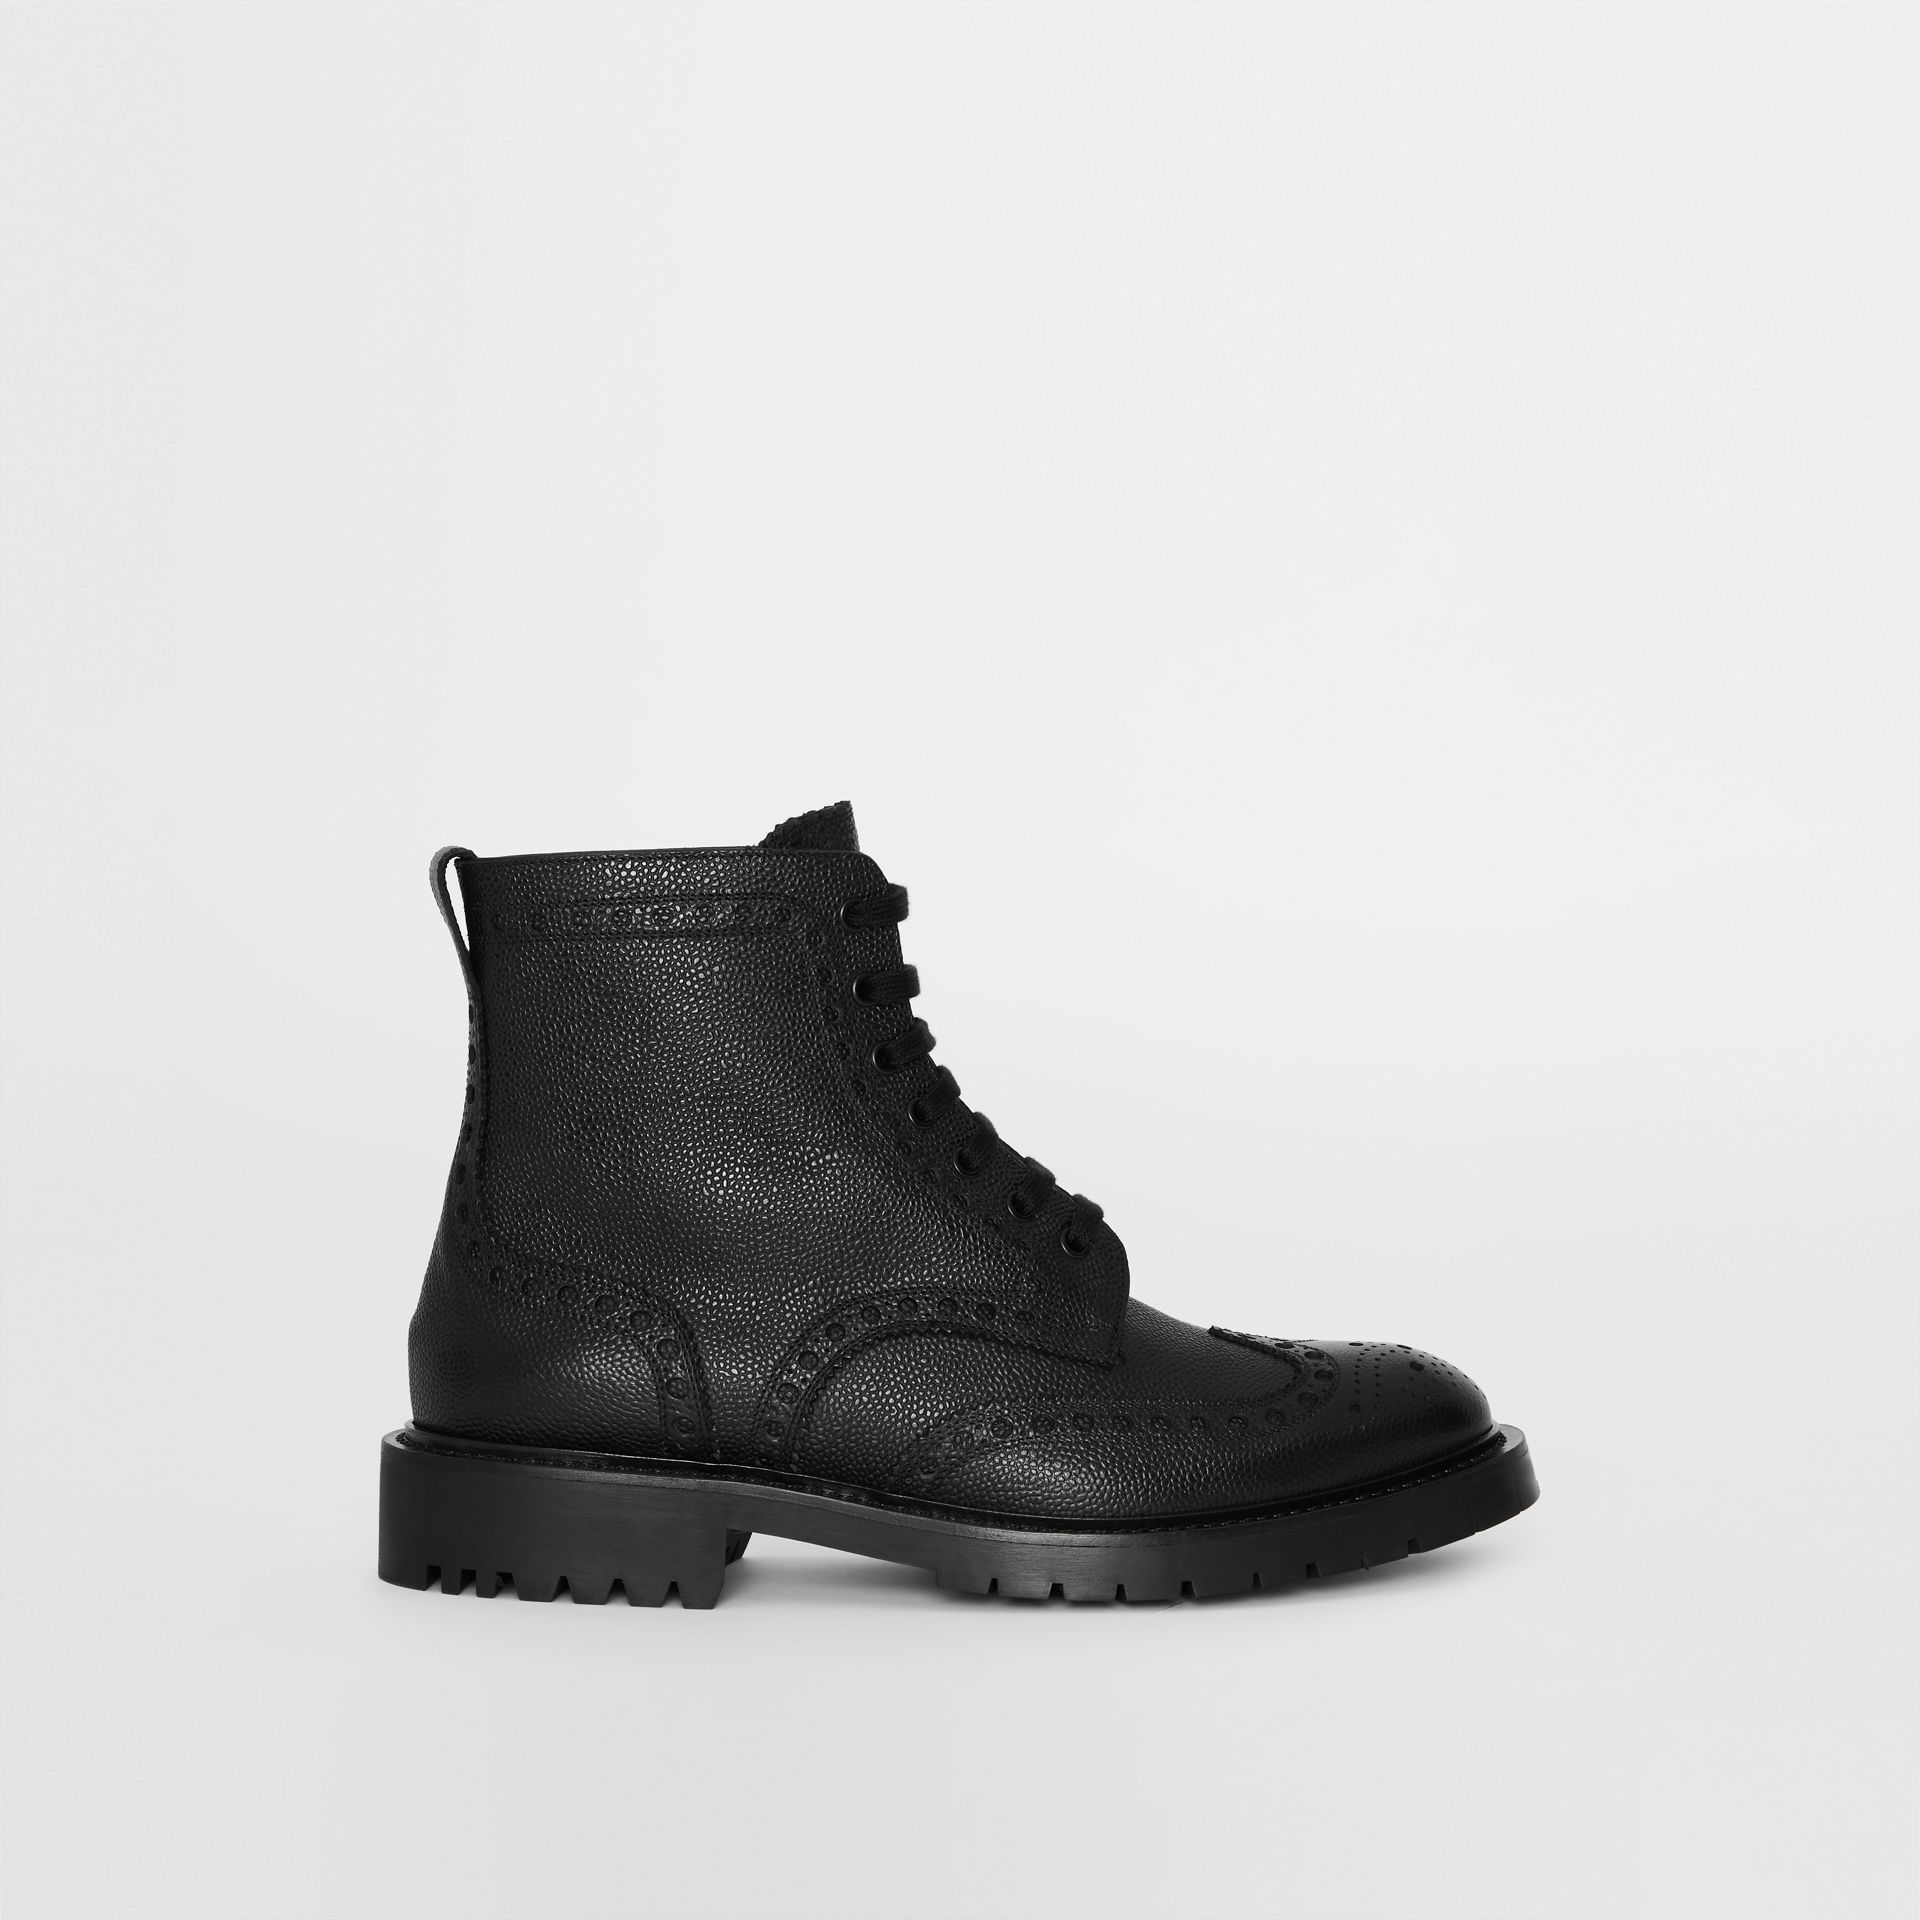 Brogue Detail Grainy Leather Boots in Black - Men | Burberry Singapore - gallery image 5